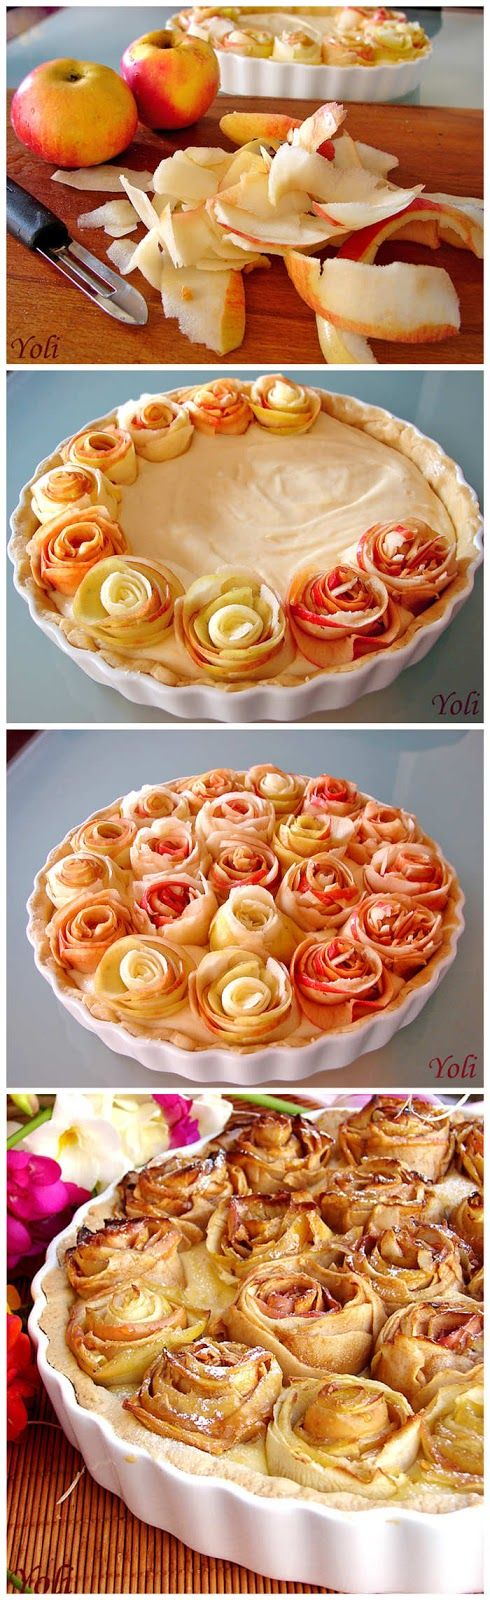 Apple pie roses....gorgeous!